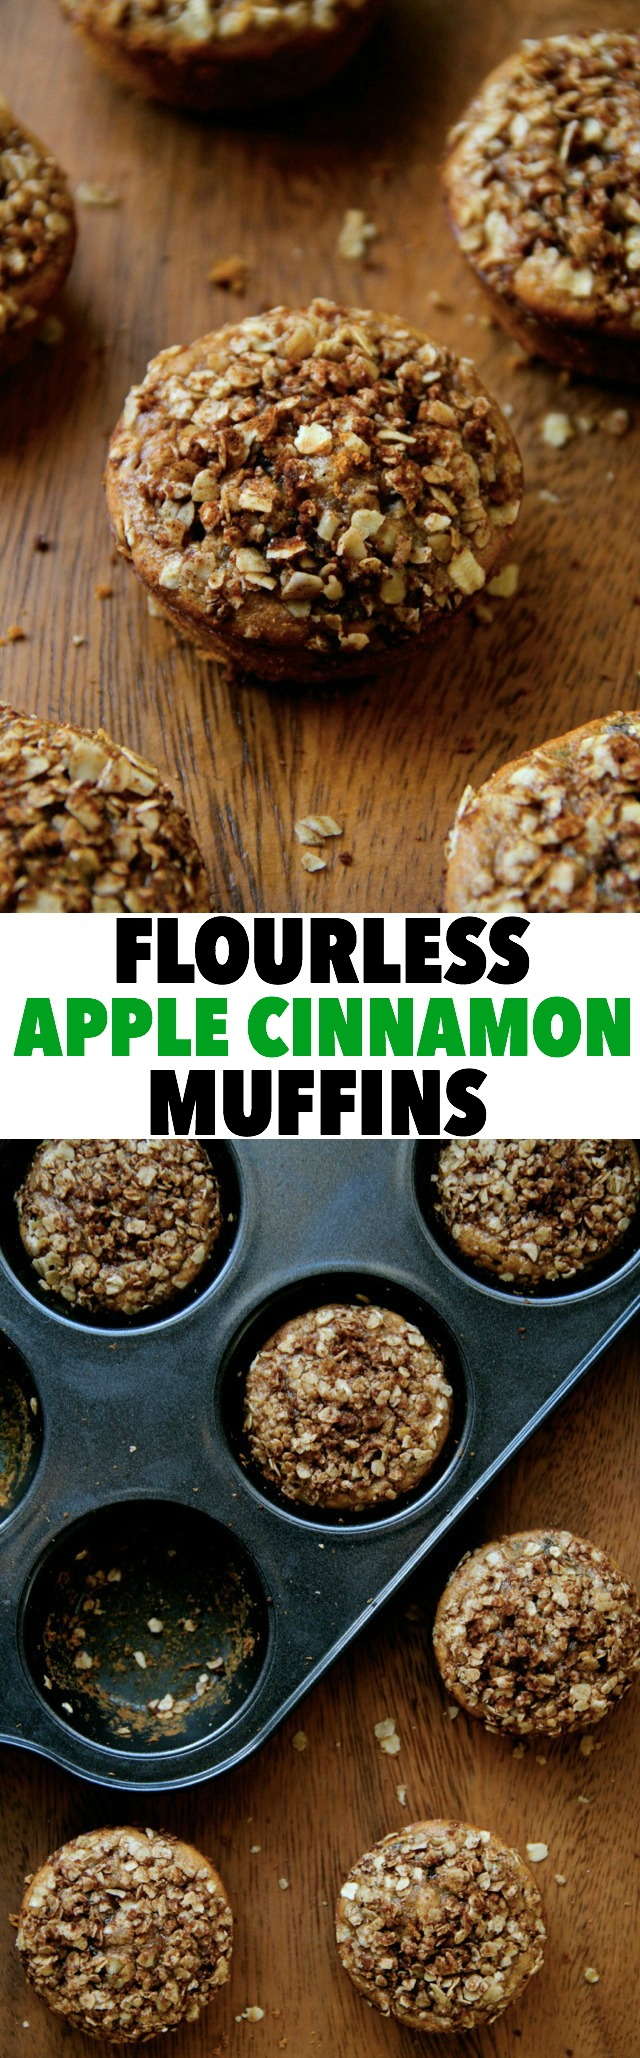 Flourless Apple Cinnamon Muffins -- soft, sweet, and made without flour, oil, or refined sugar!    runningwithspoons.com #apple #muffin